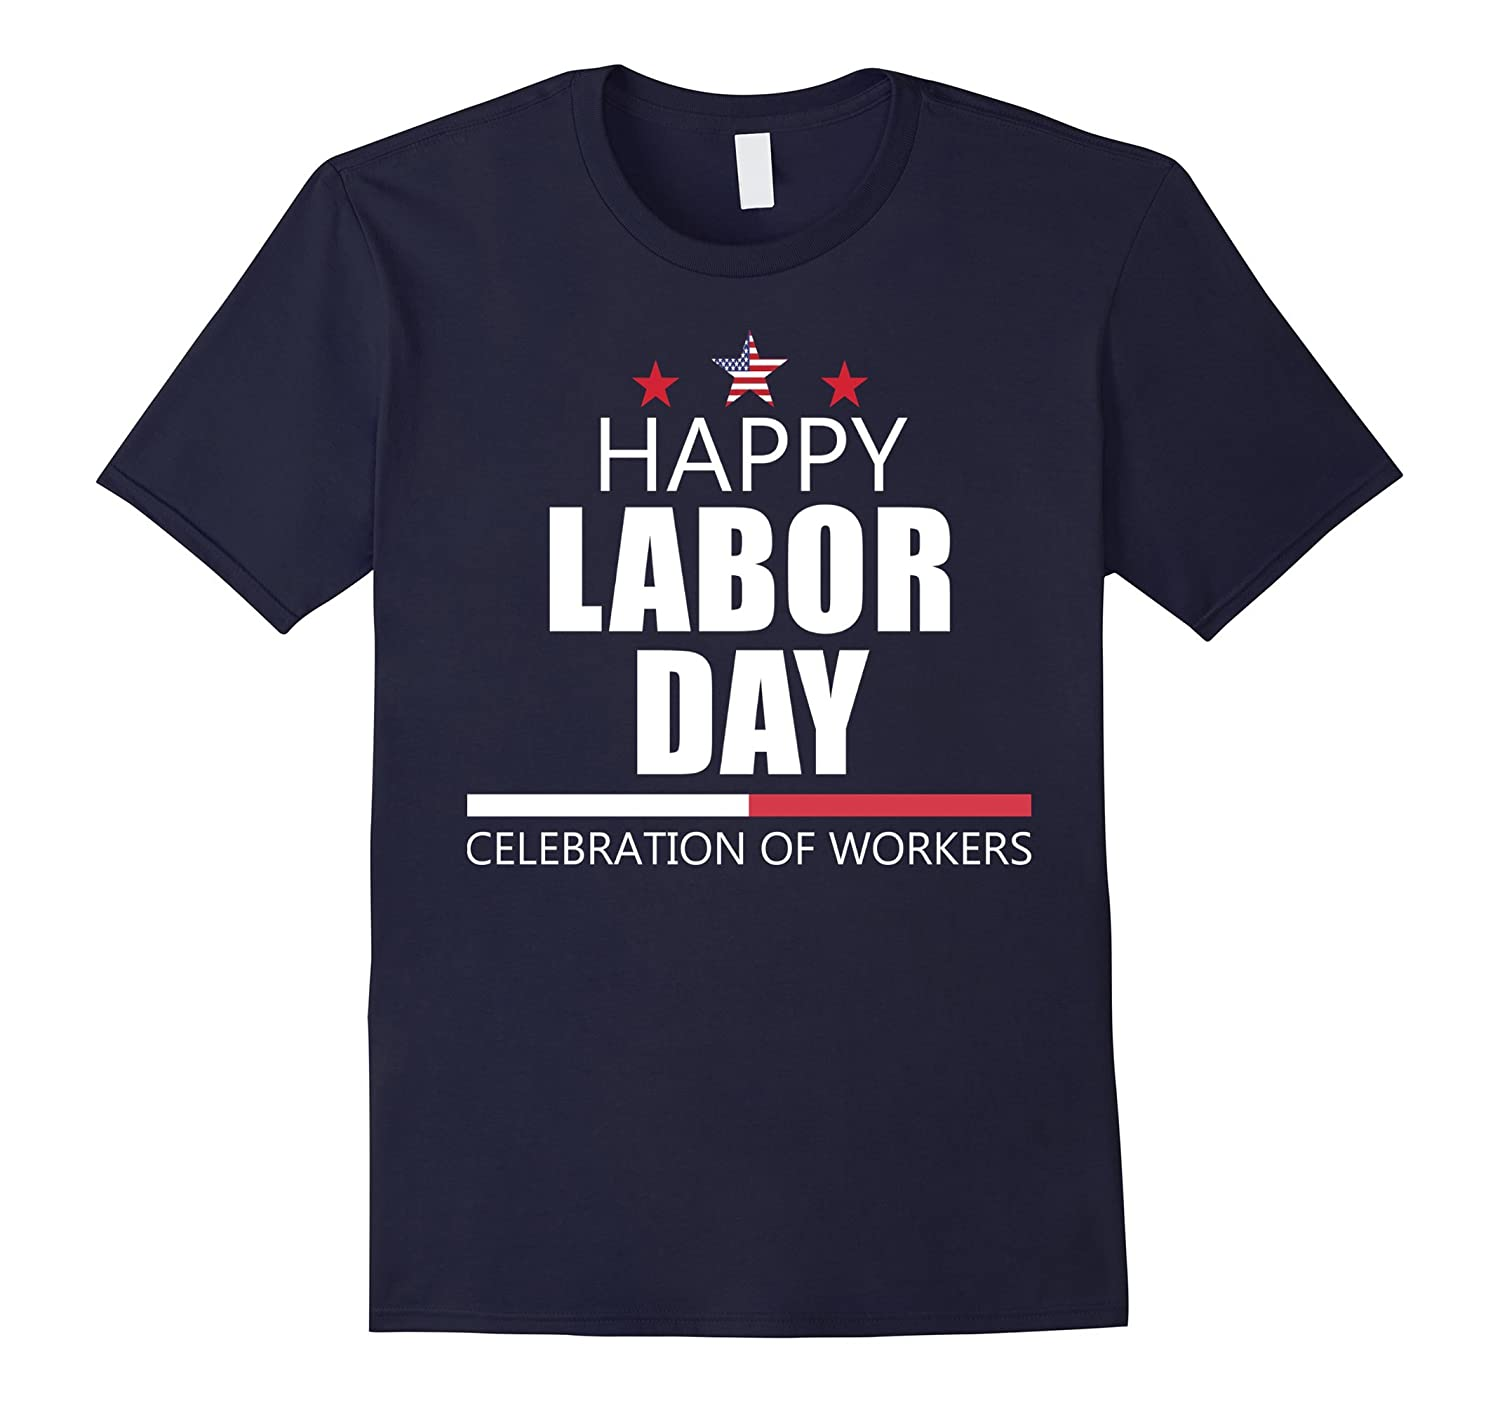 Labor Day T-Shirt 2017 - Happy Labor Day Funny Shirt-BN